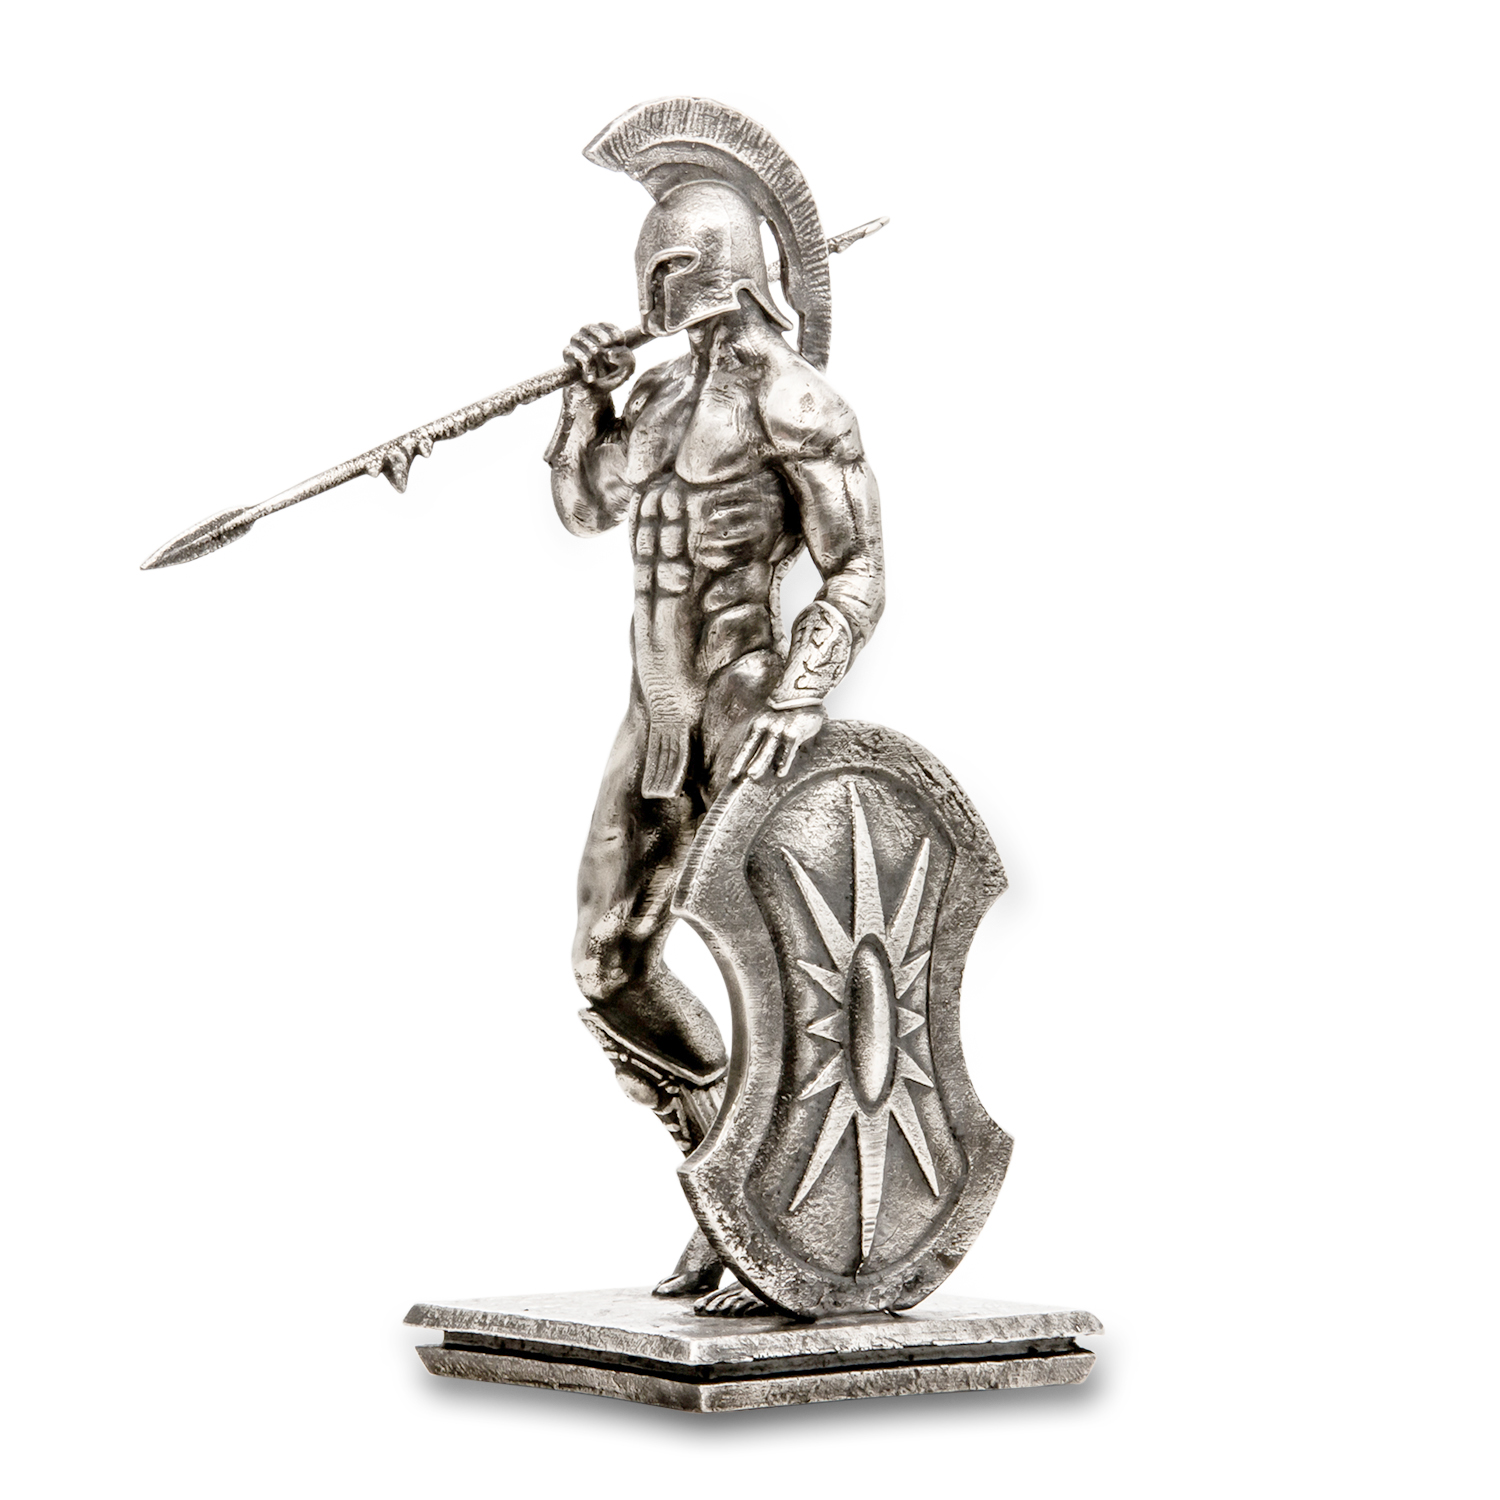 4 oz Silver Antique Statue - Frank Frazetta (Atlantis)